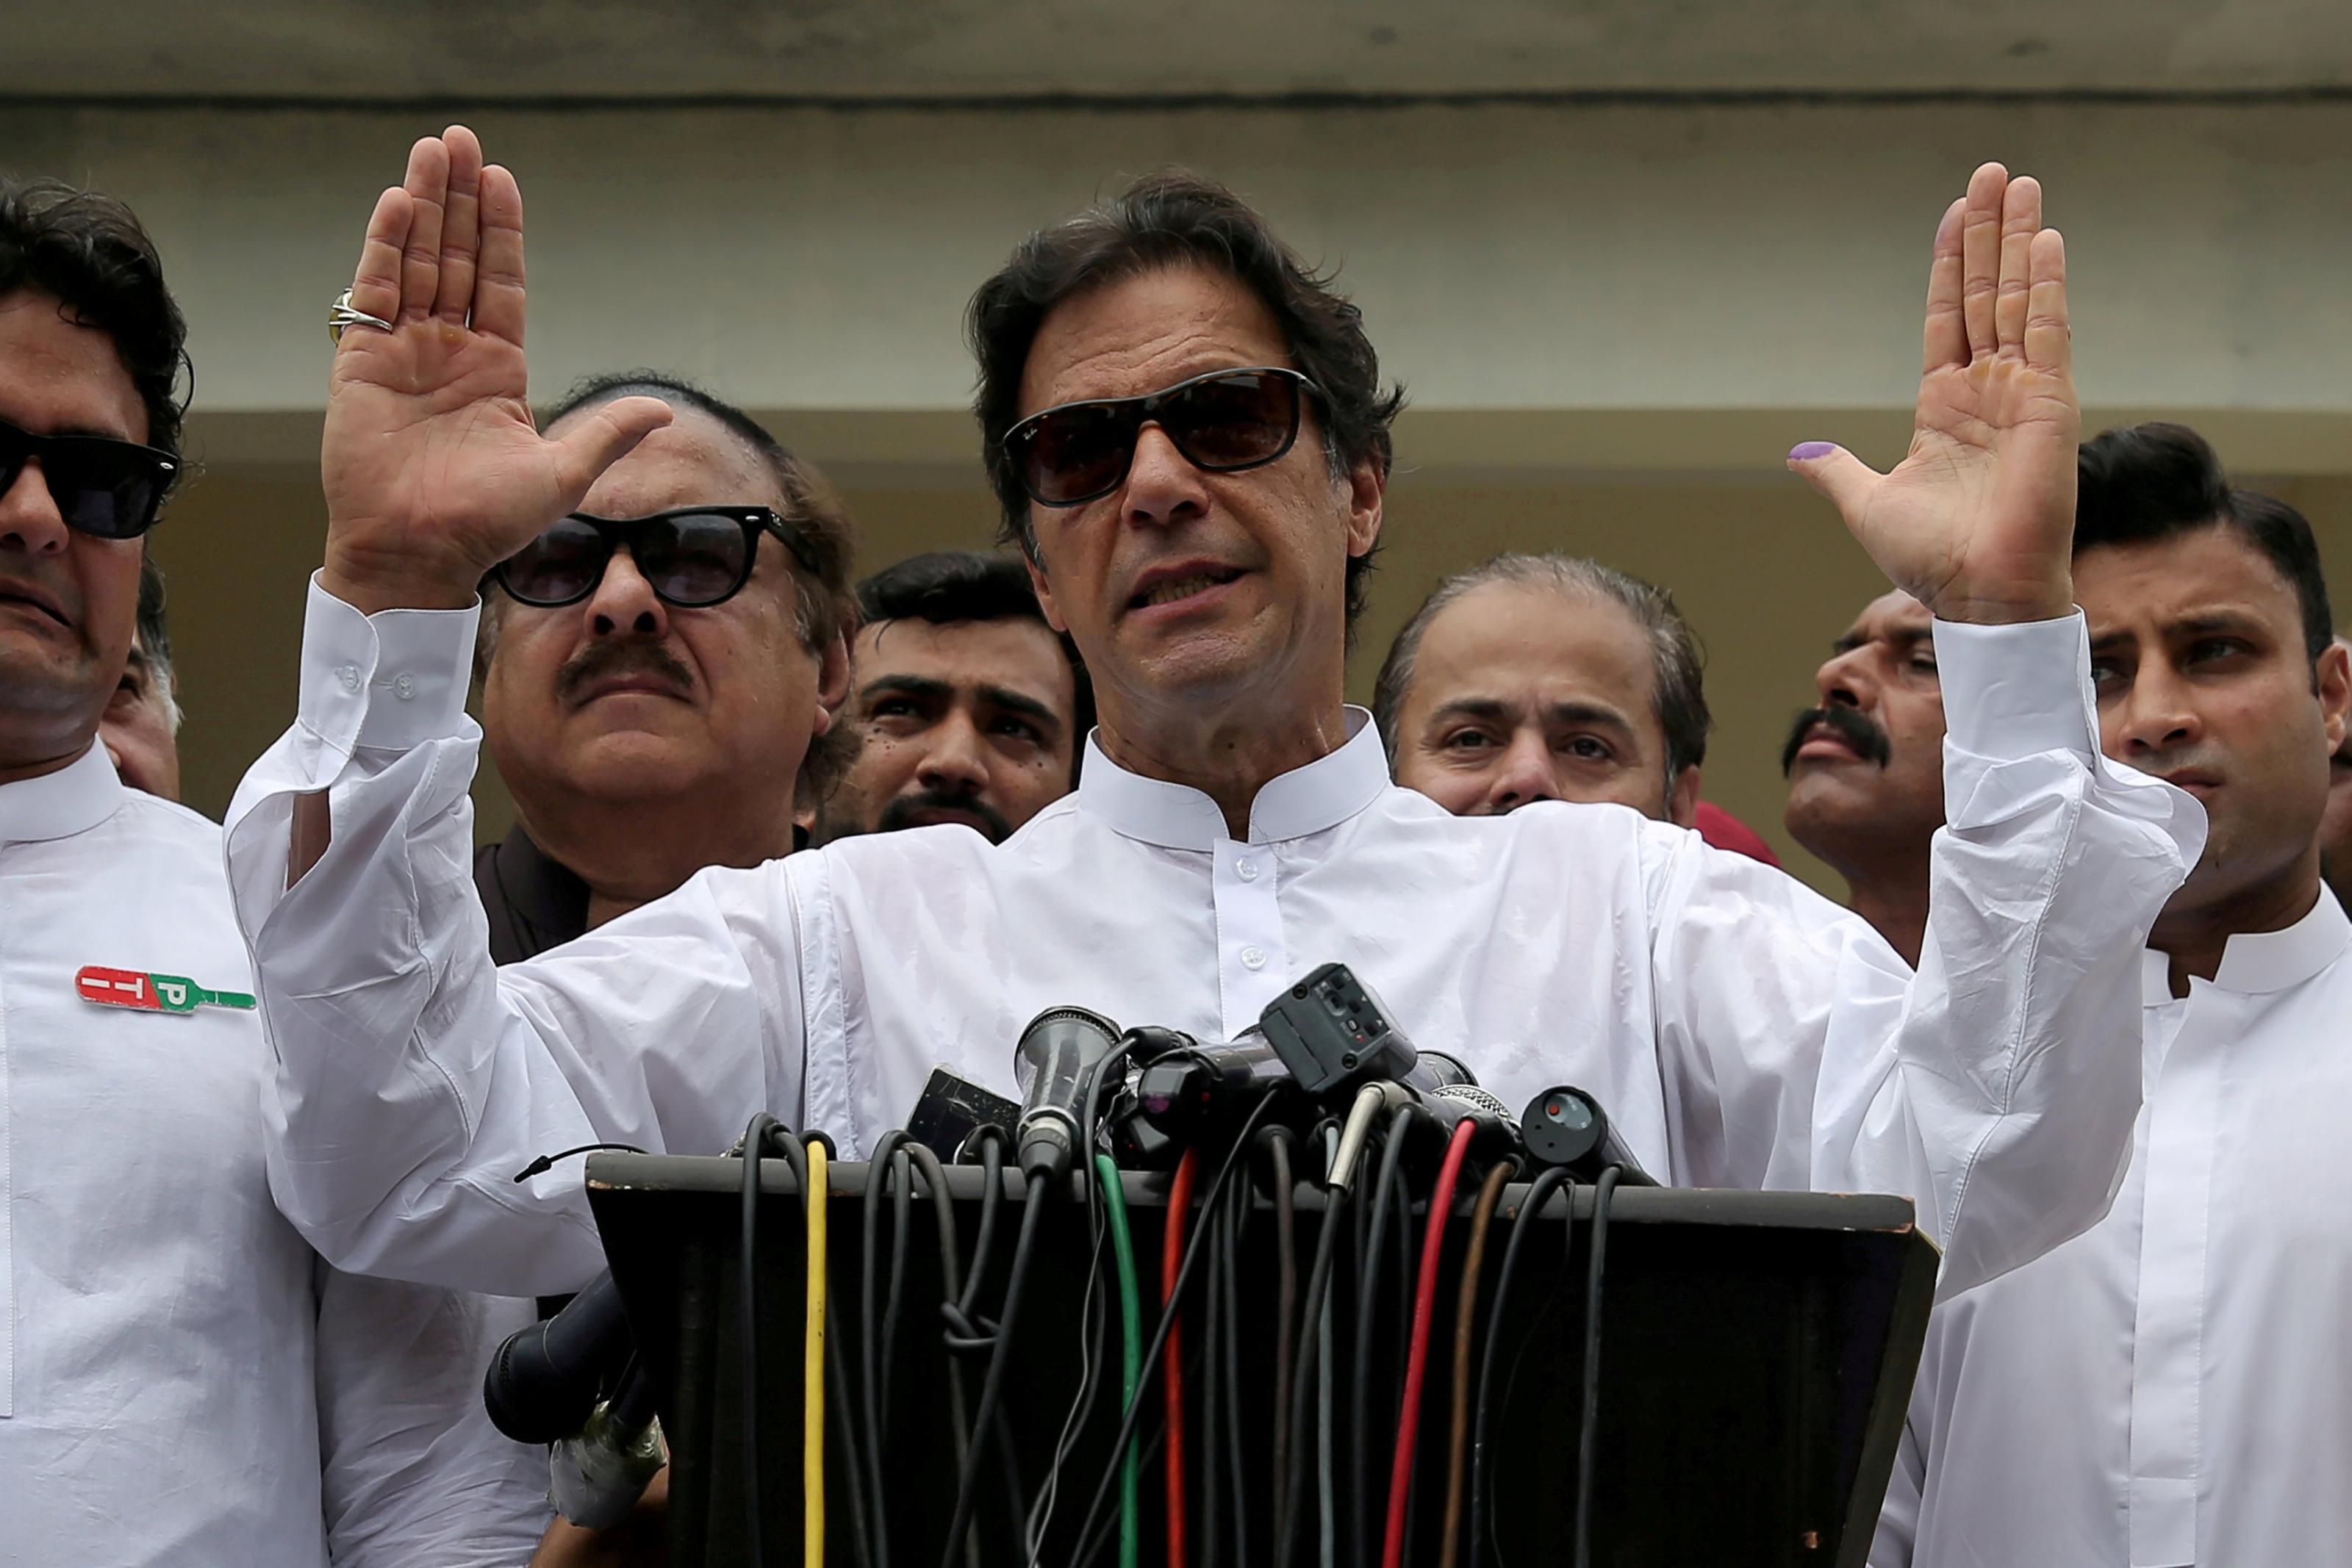 Imran Khan, the Oxford-educated former playboy cricketer, and now, Prime Minister of Pakistan